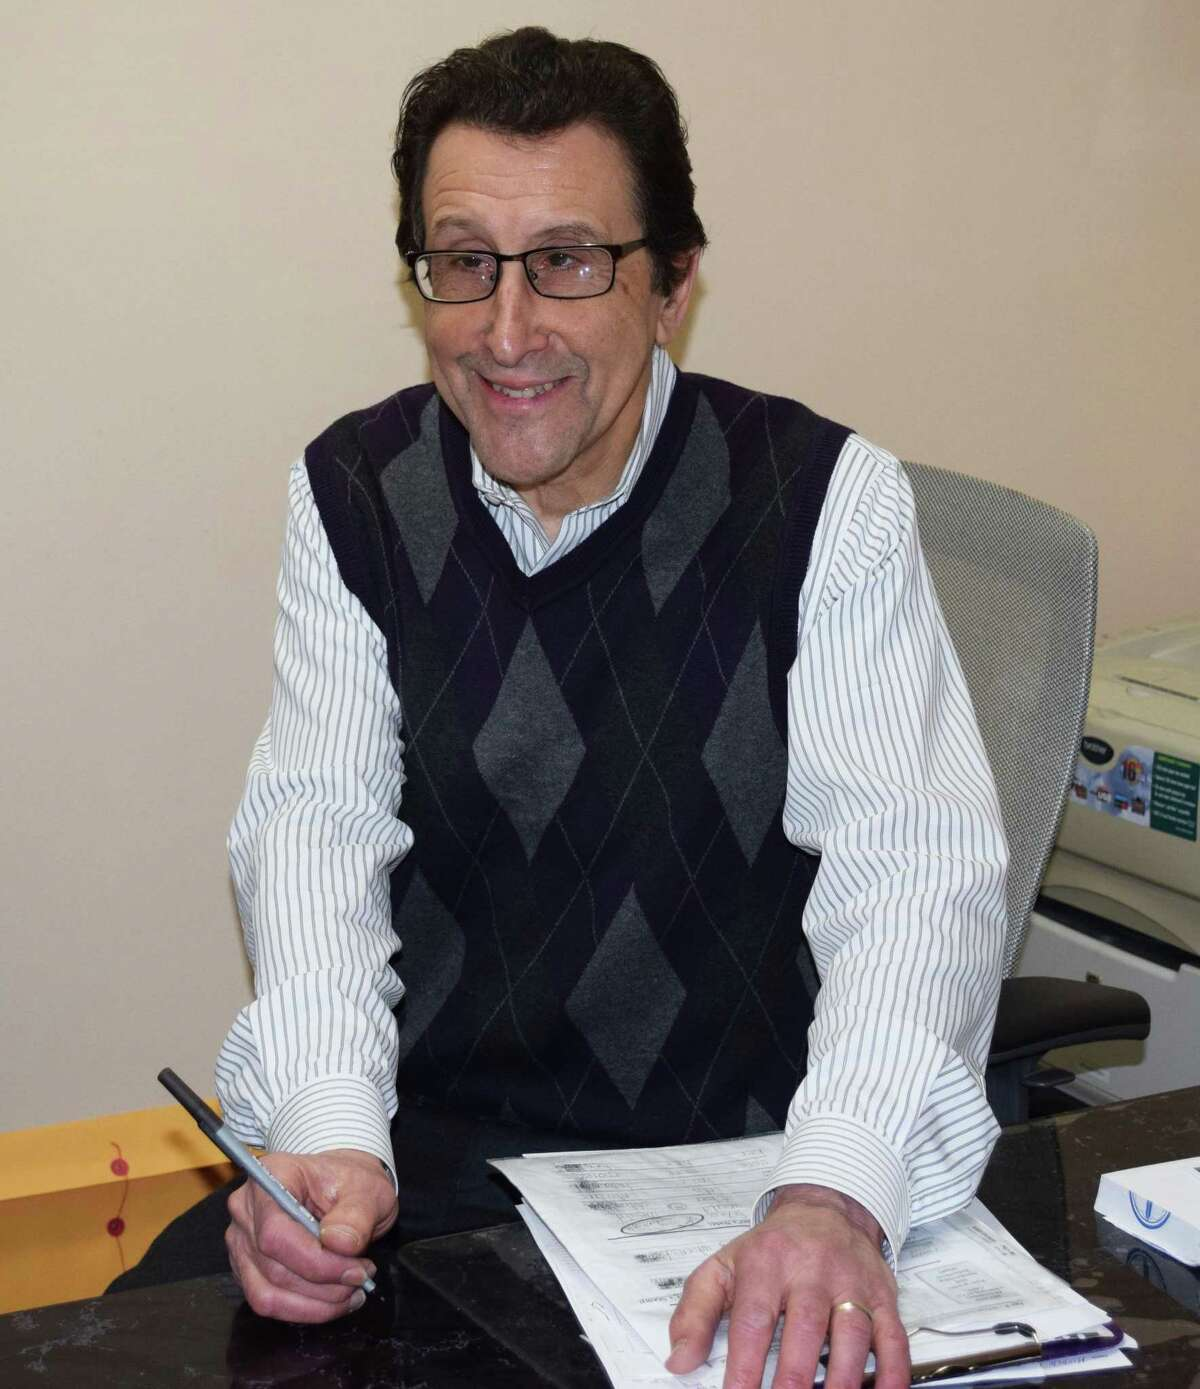 Dr. Arthur Klein operates Family First Chiropractic and Wellness Center in New Milford. The practice is celebrating its 25th anniversary in 2018.